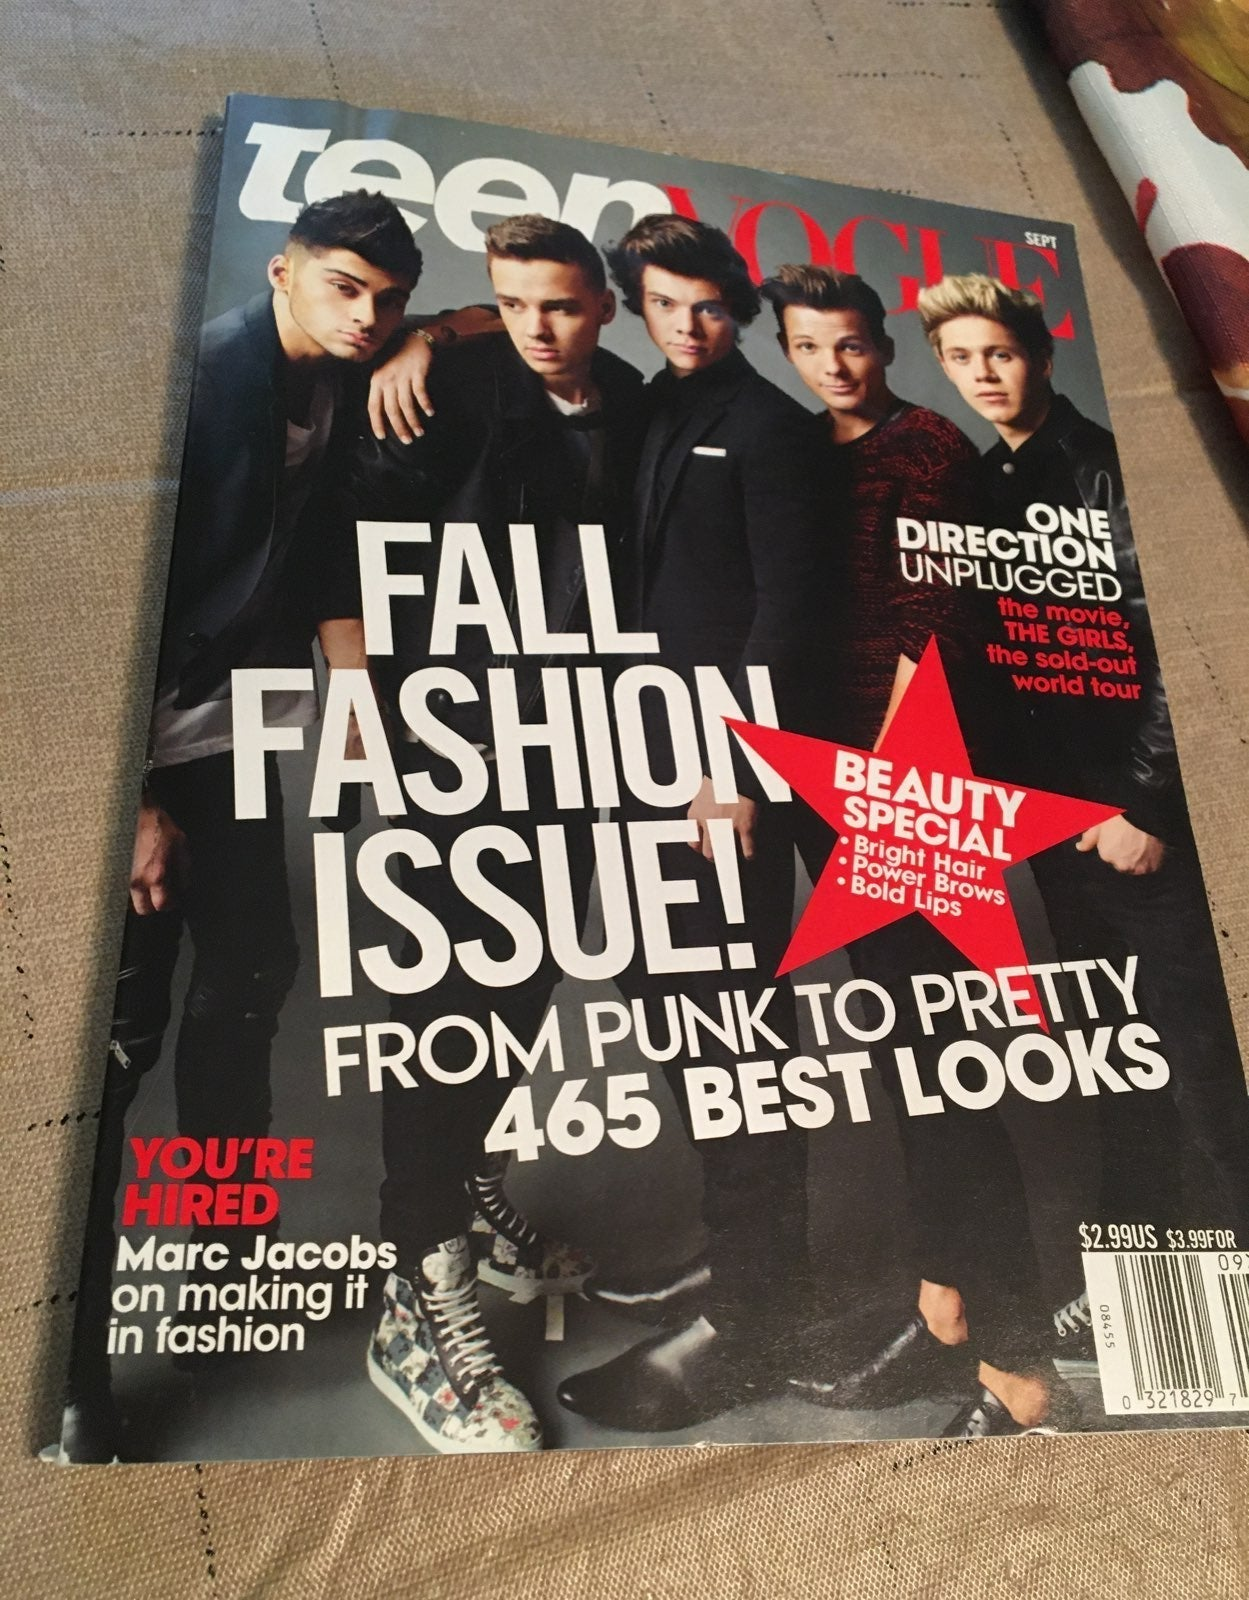 One direction magazine and book